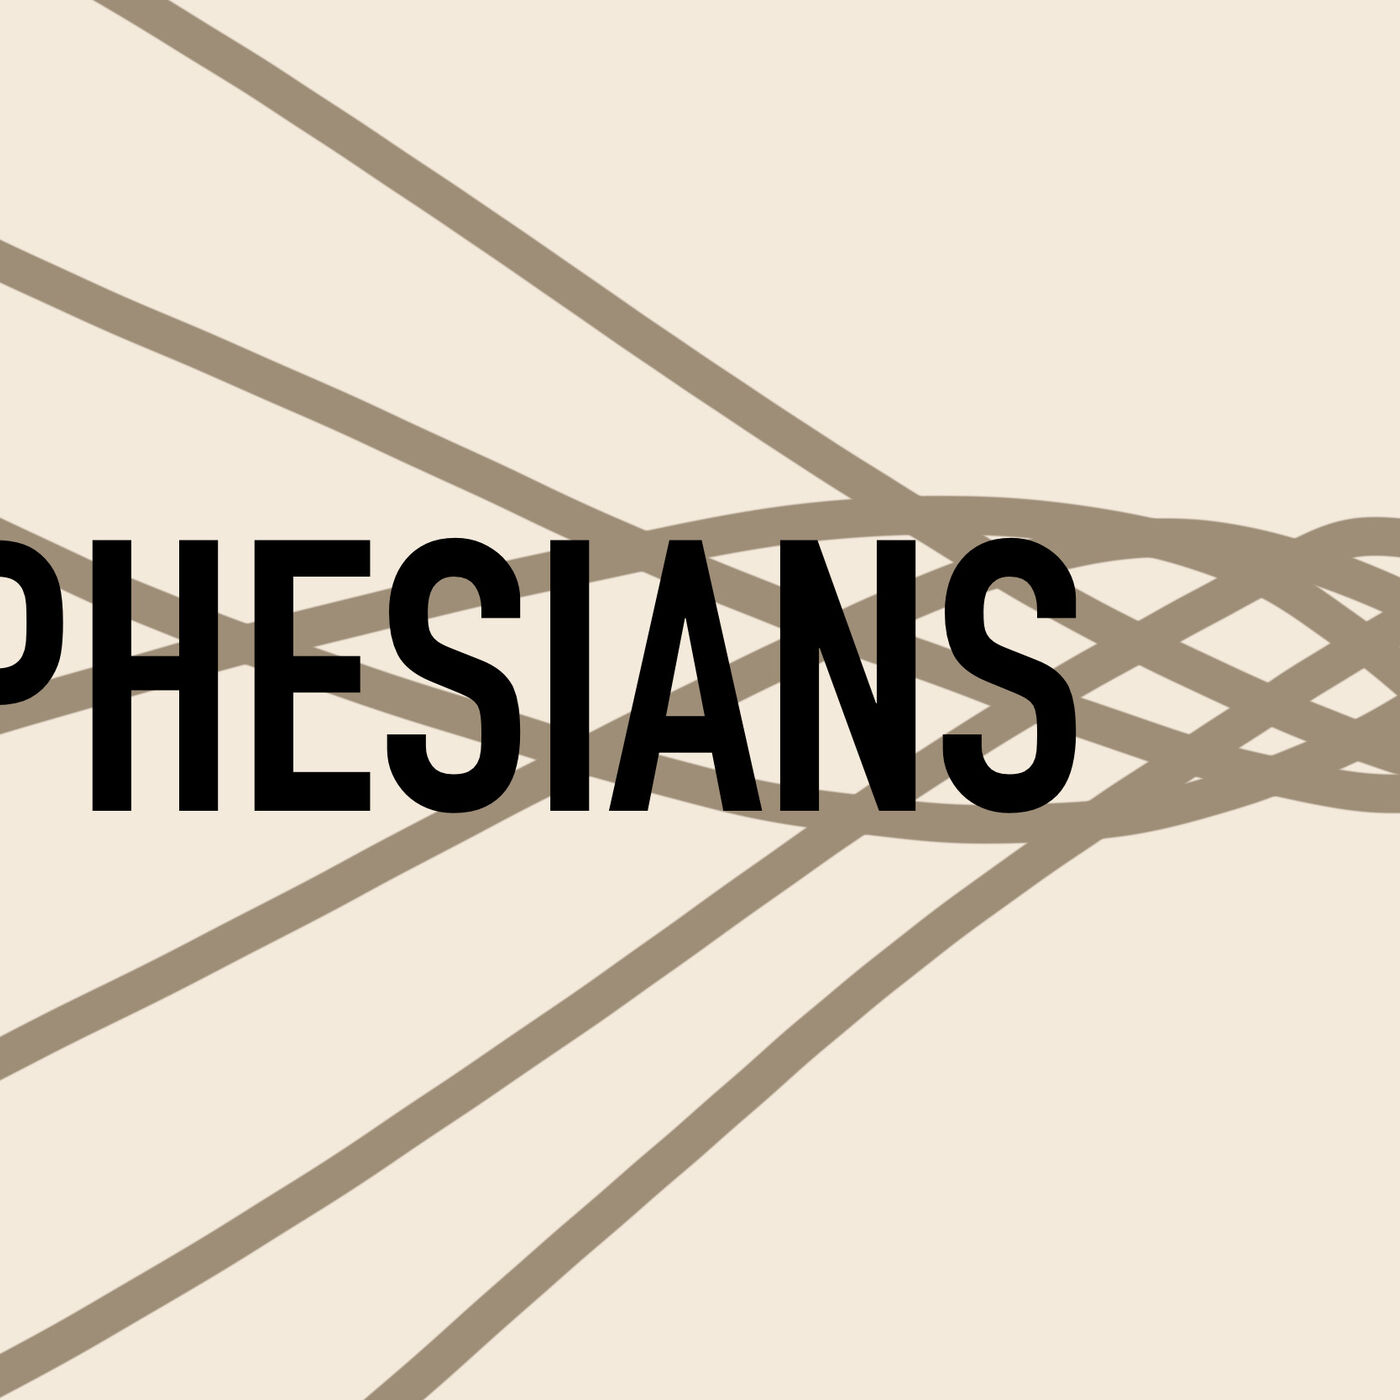 Ephesians 5:21 - Submission (Matins)